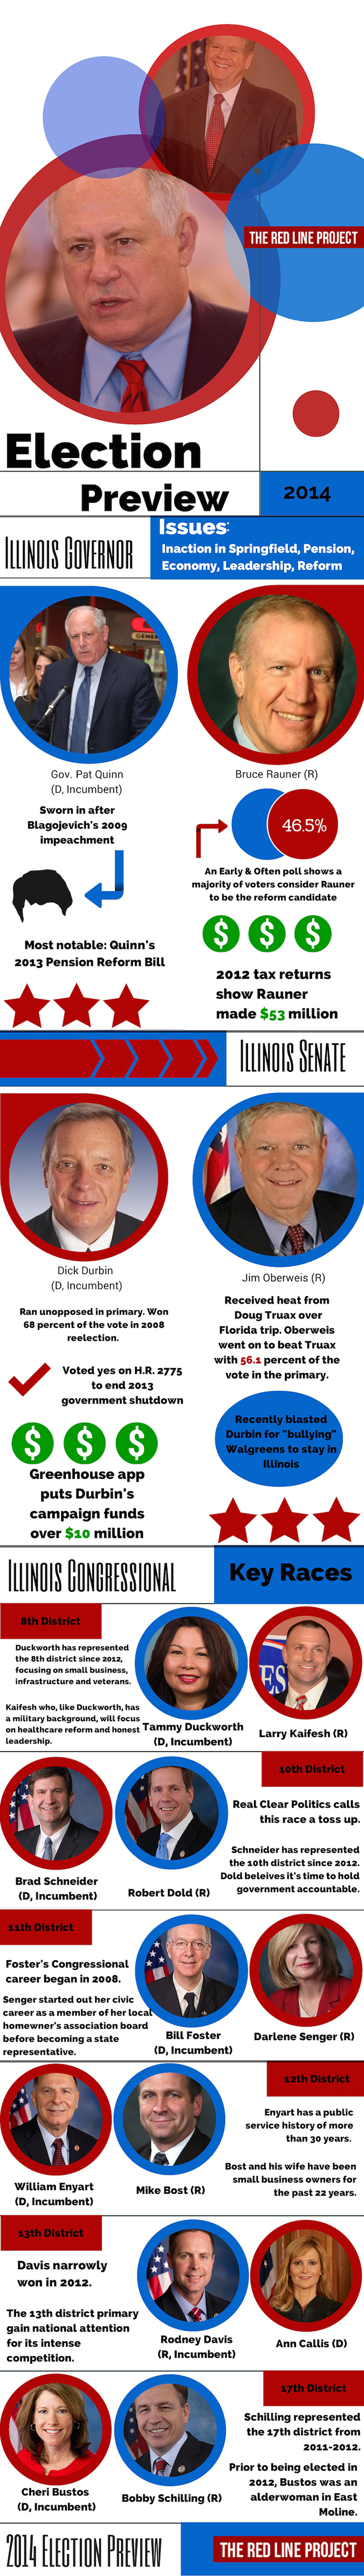 Election 2014 Infographic